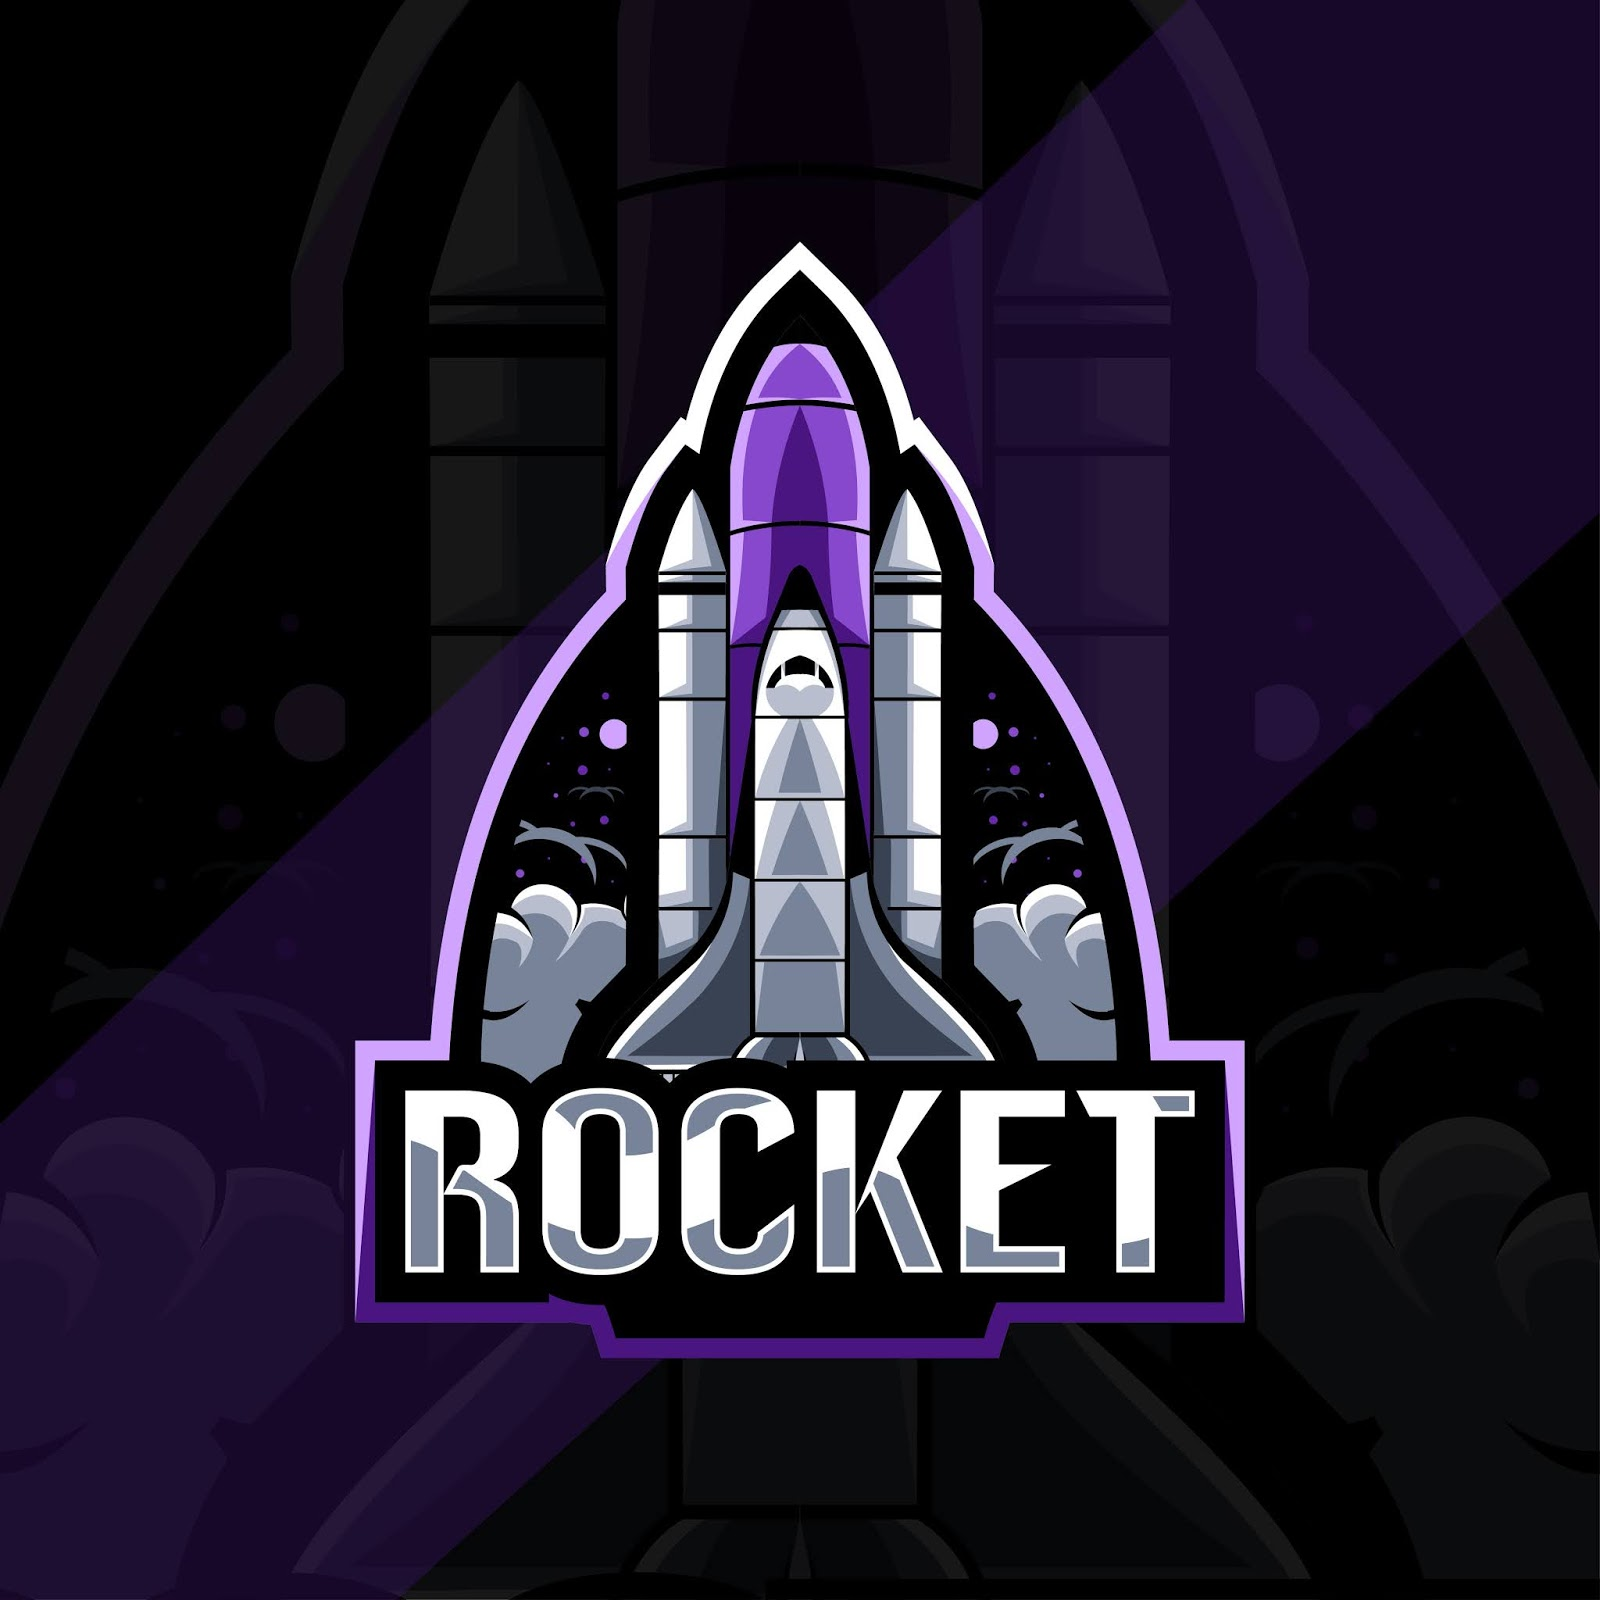 Rocket Mascot Logo Esport Template Design Free Download Vector CDR, AI, EPS and PNG Formats